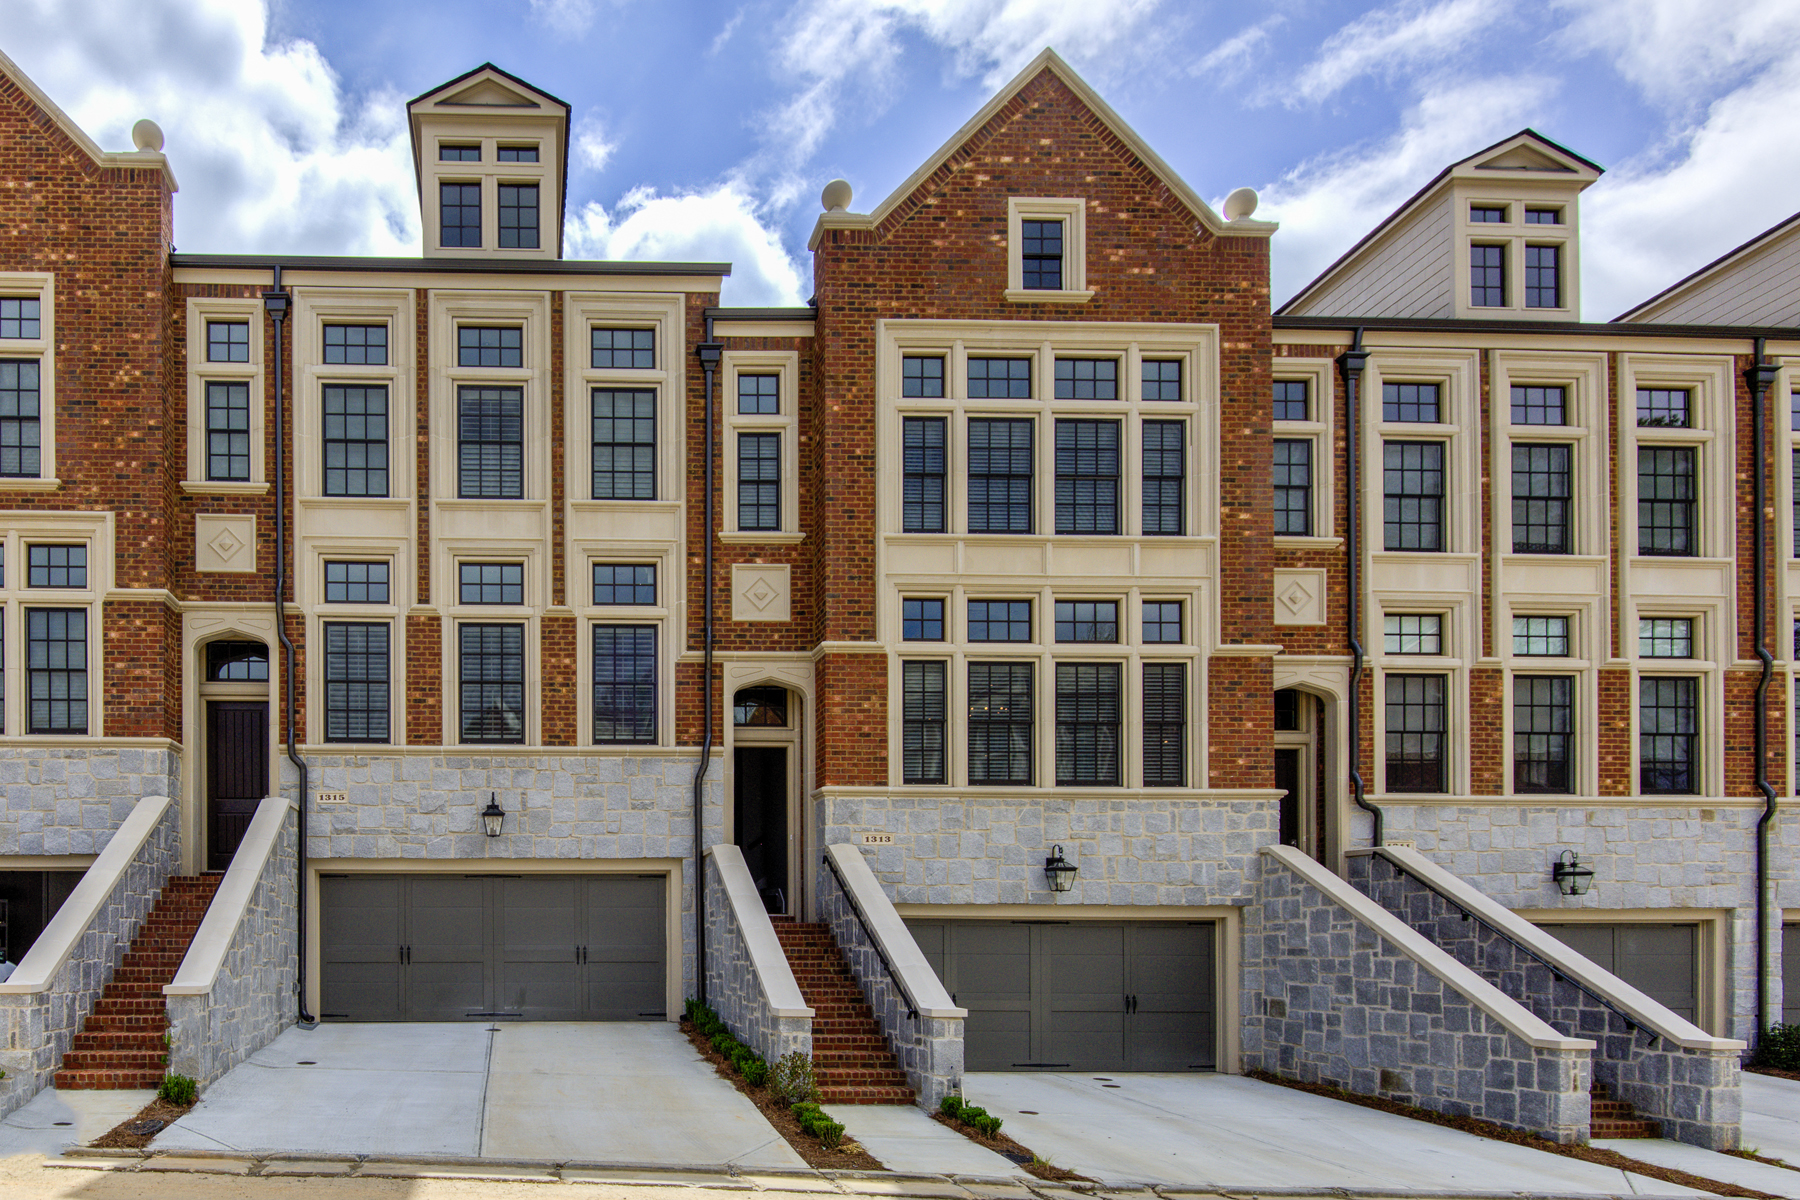 Townhouse for Rent at Fabulous Three Bedroom, Three and a Half Bath Townhome for Rent 1313 Dover Circle NE Brookhaven, Georgia, 30319 United States